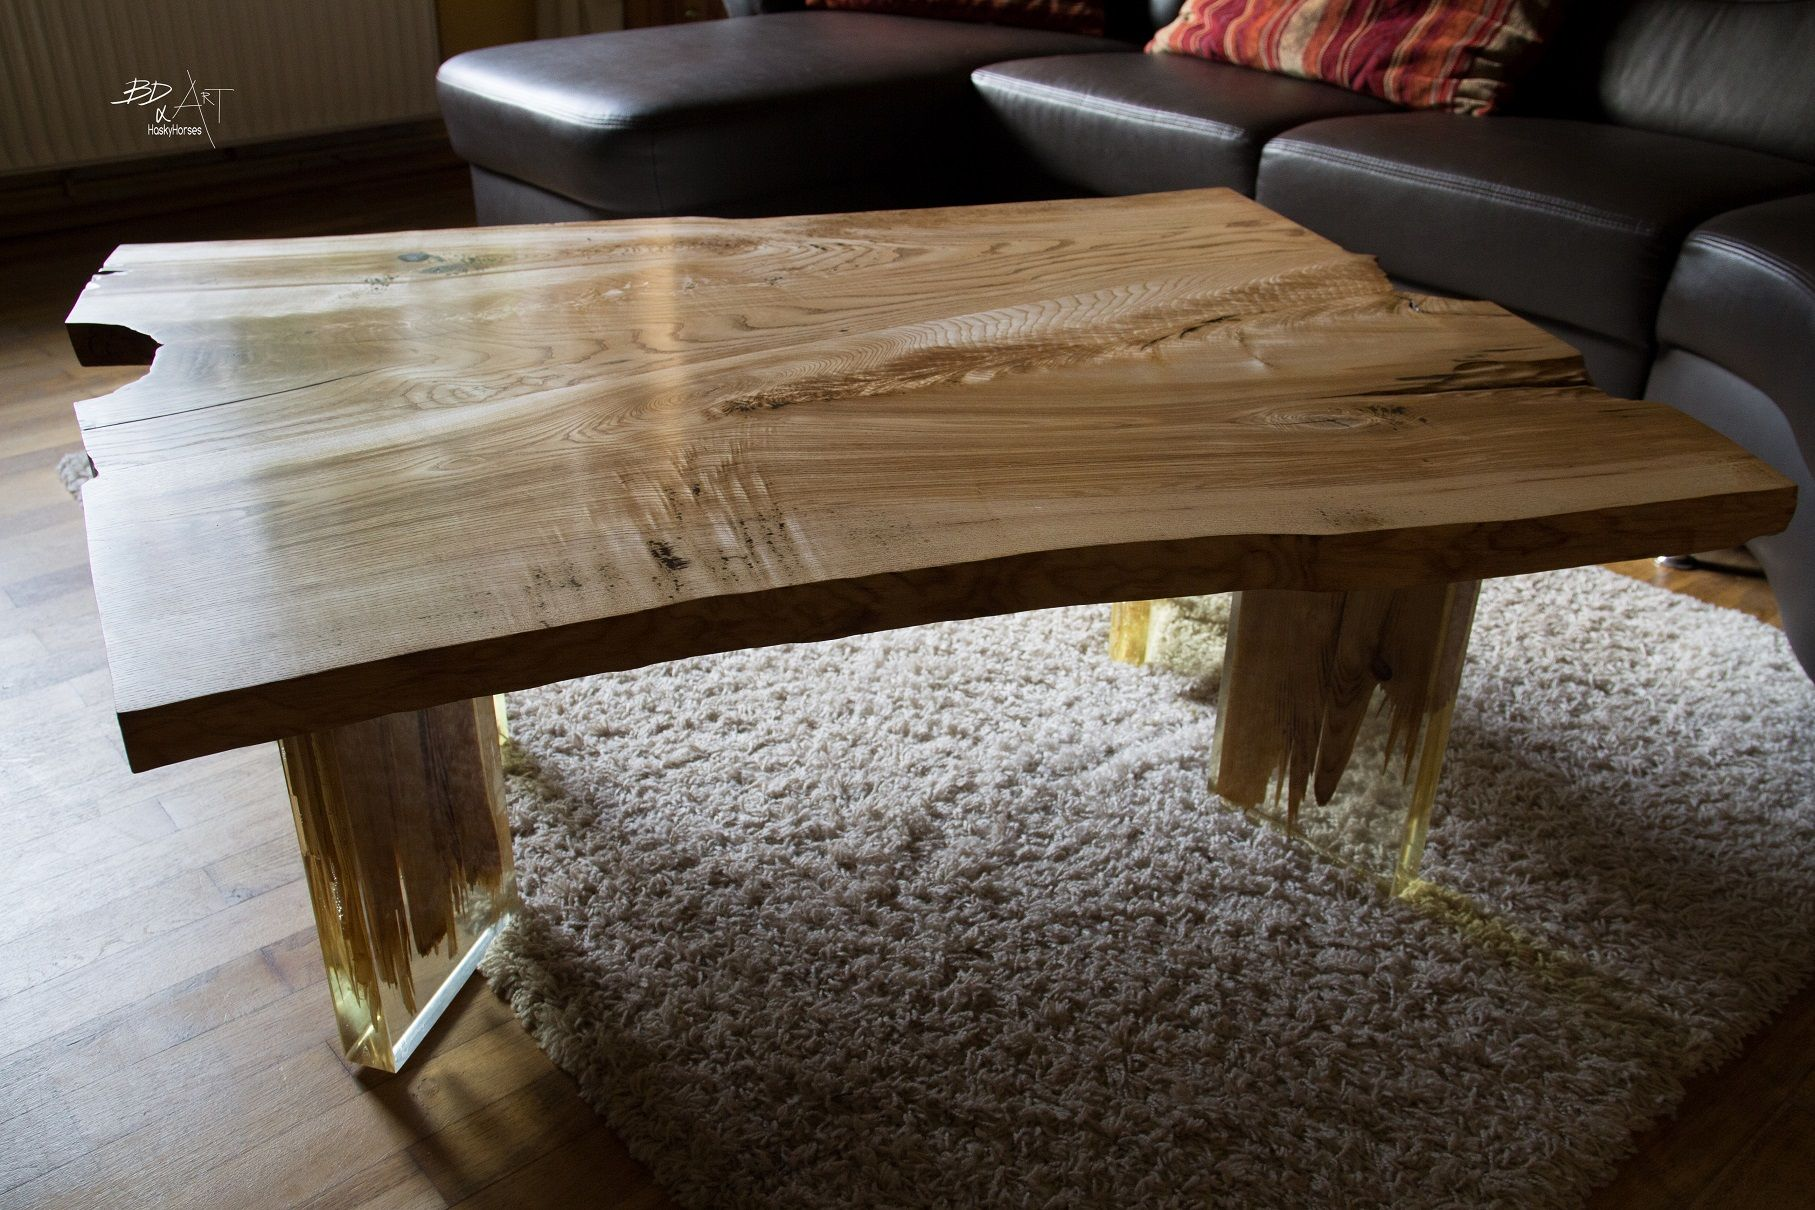 Couchtisch Montain Oak Couch Table Mountain Ash Couchtische Couch Table Pinterest